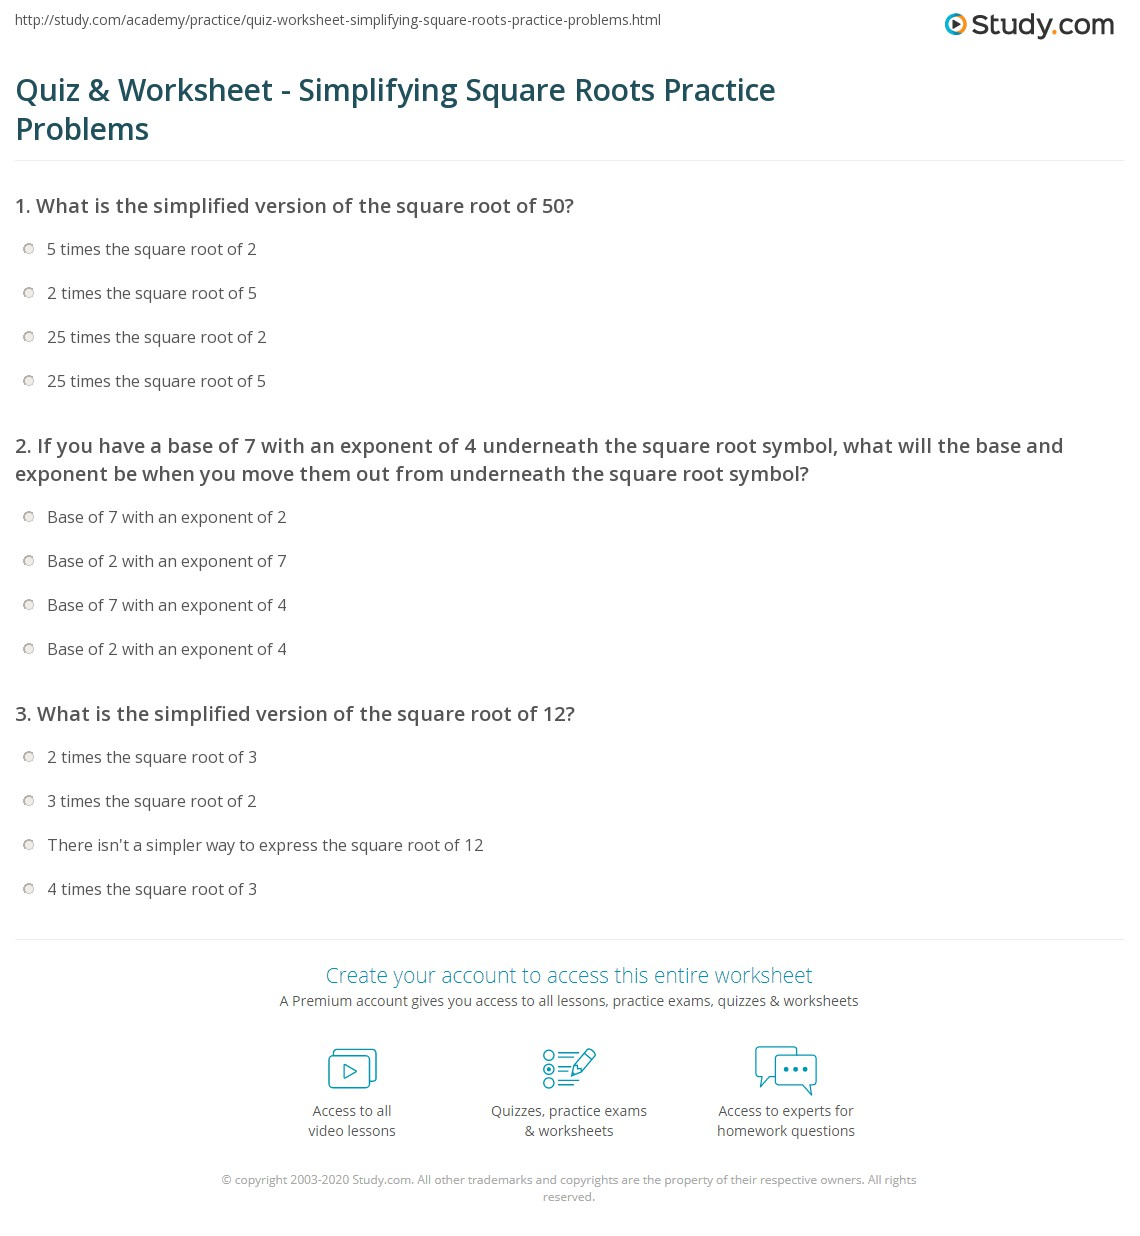 Quiz & Worksheet - Simplifying Square Roots Practice Problems